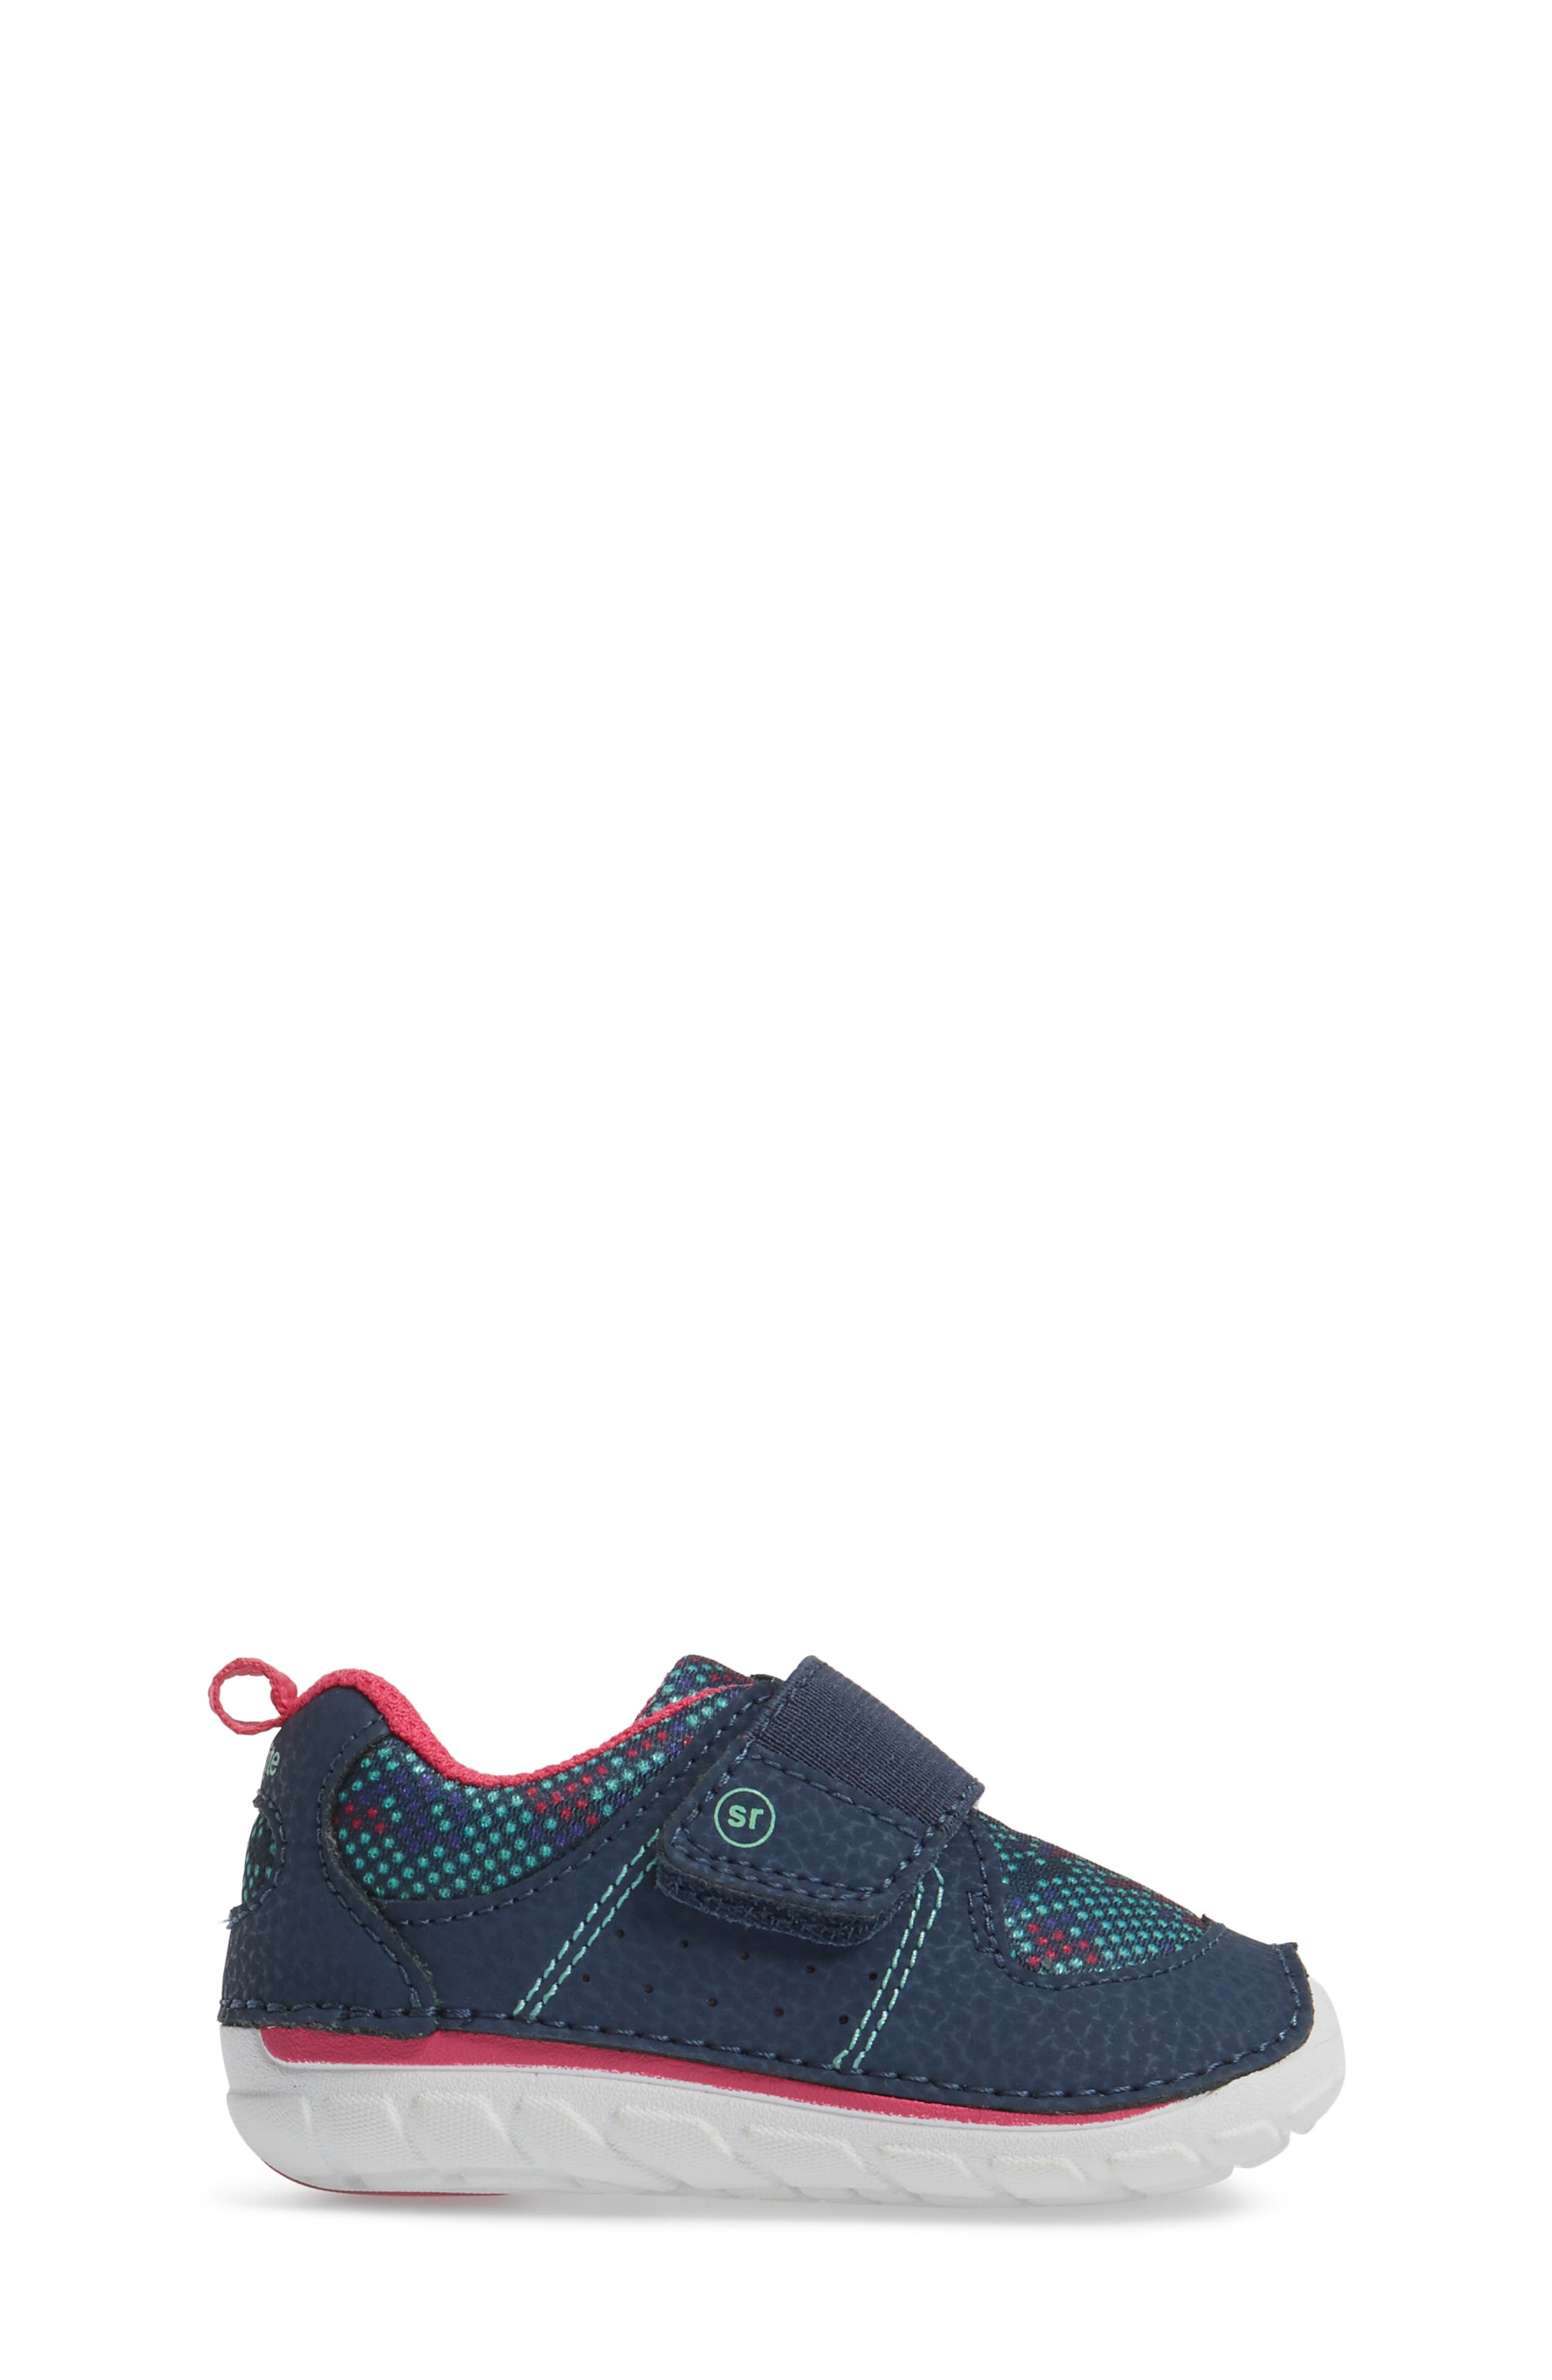 Soft Motion<sup>™</sup> Ripley Sneaker,                             Alternate thumbnail 3, color,                             Navy